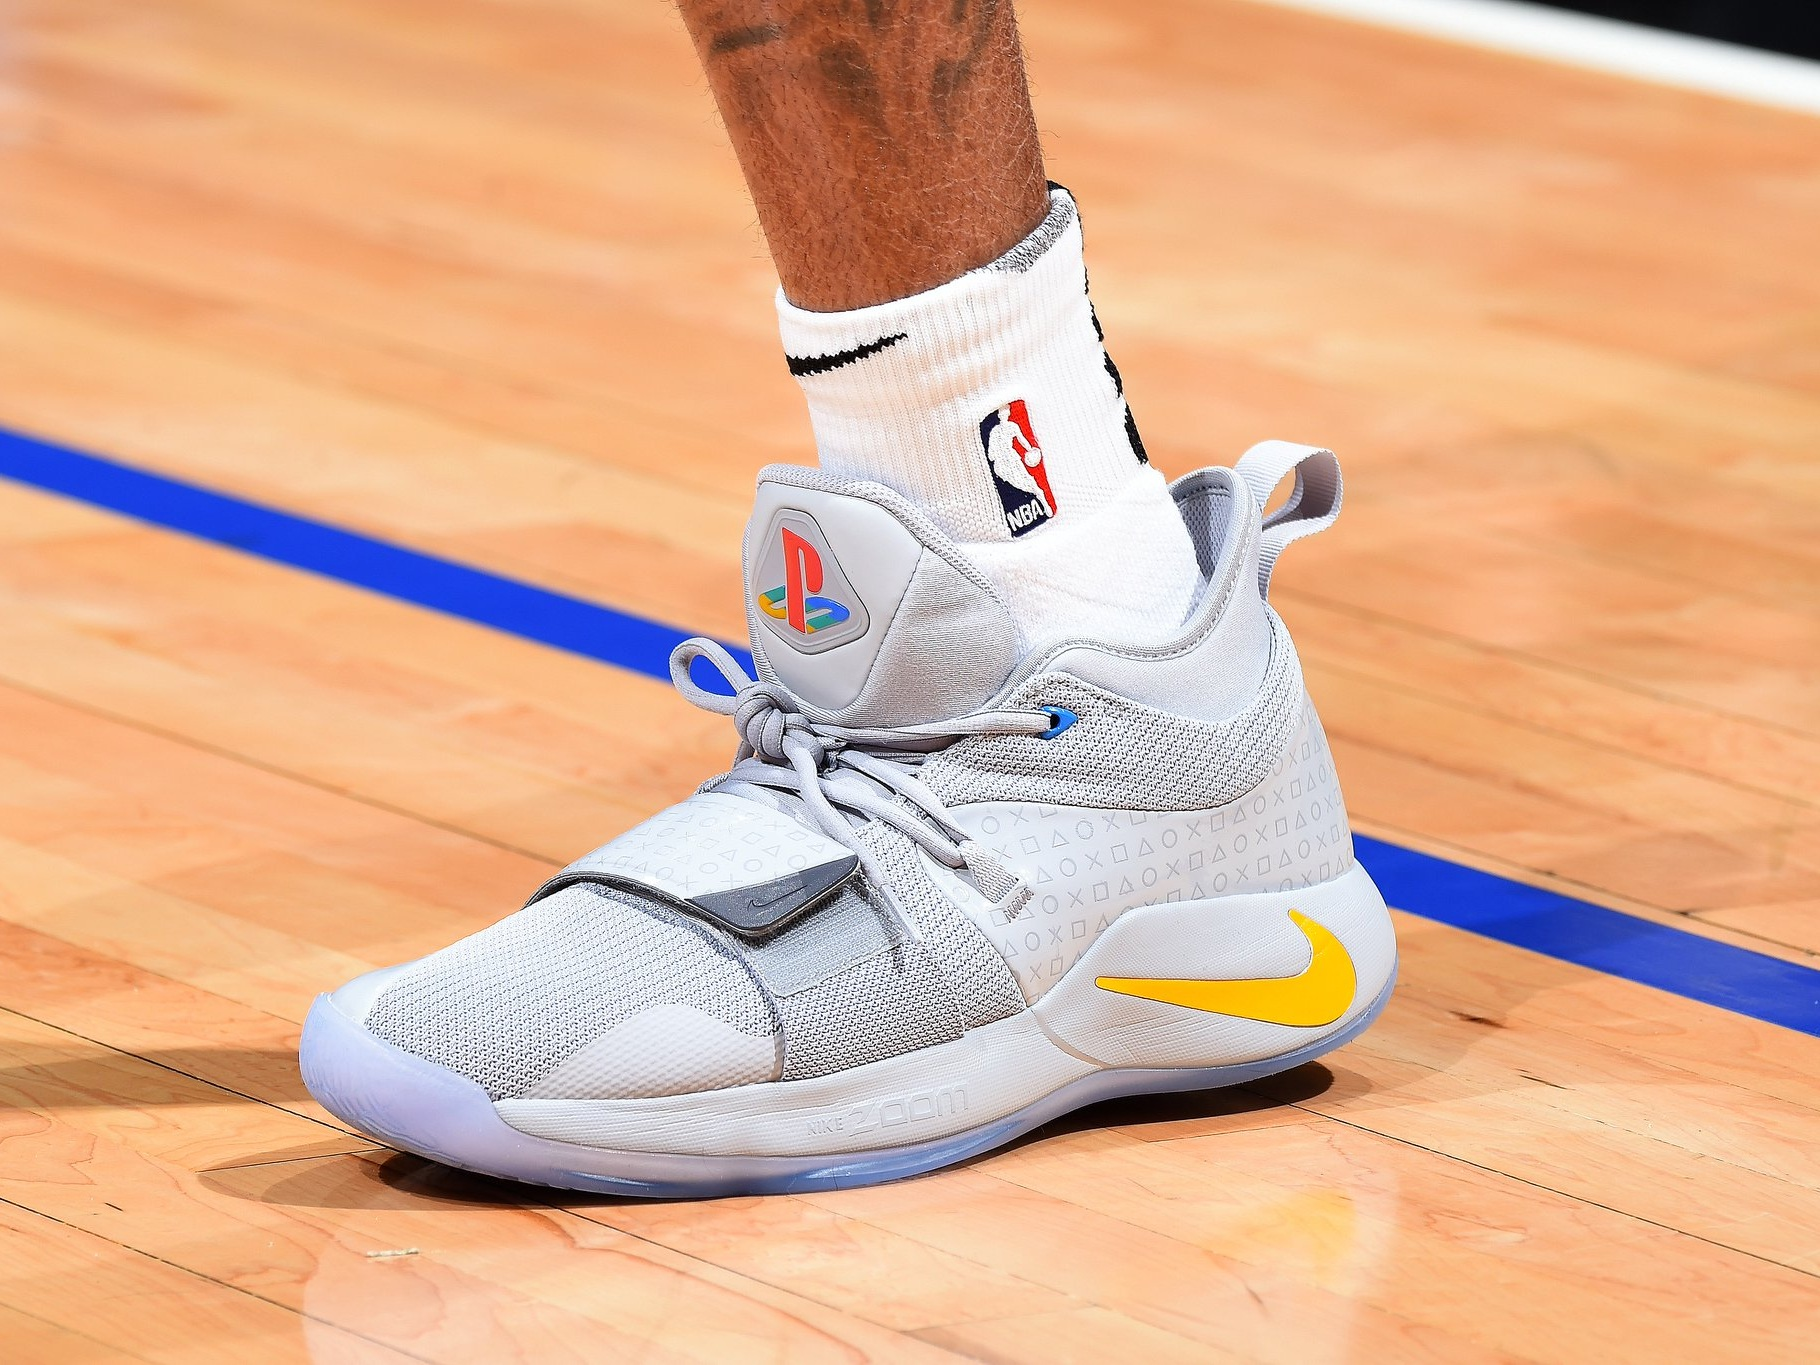 D'Angelo Russell drops 32 while sporting the Nike PG 2.5 - Brooklyn Nets vs. Los Angeles Clippers | March 17, 201932 Points10 Assists5 Rebounds1 Steal11-26 Shooting